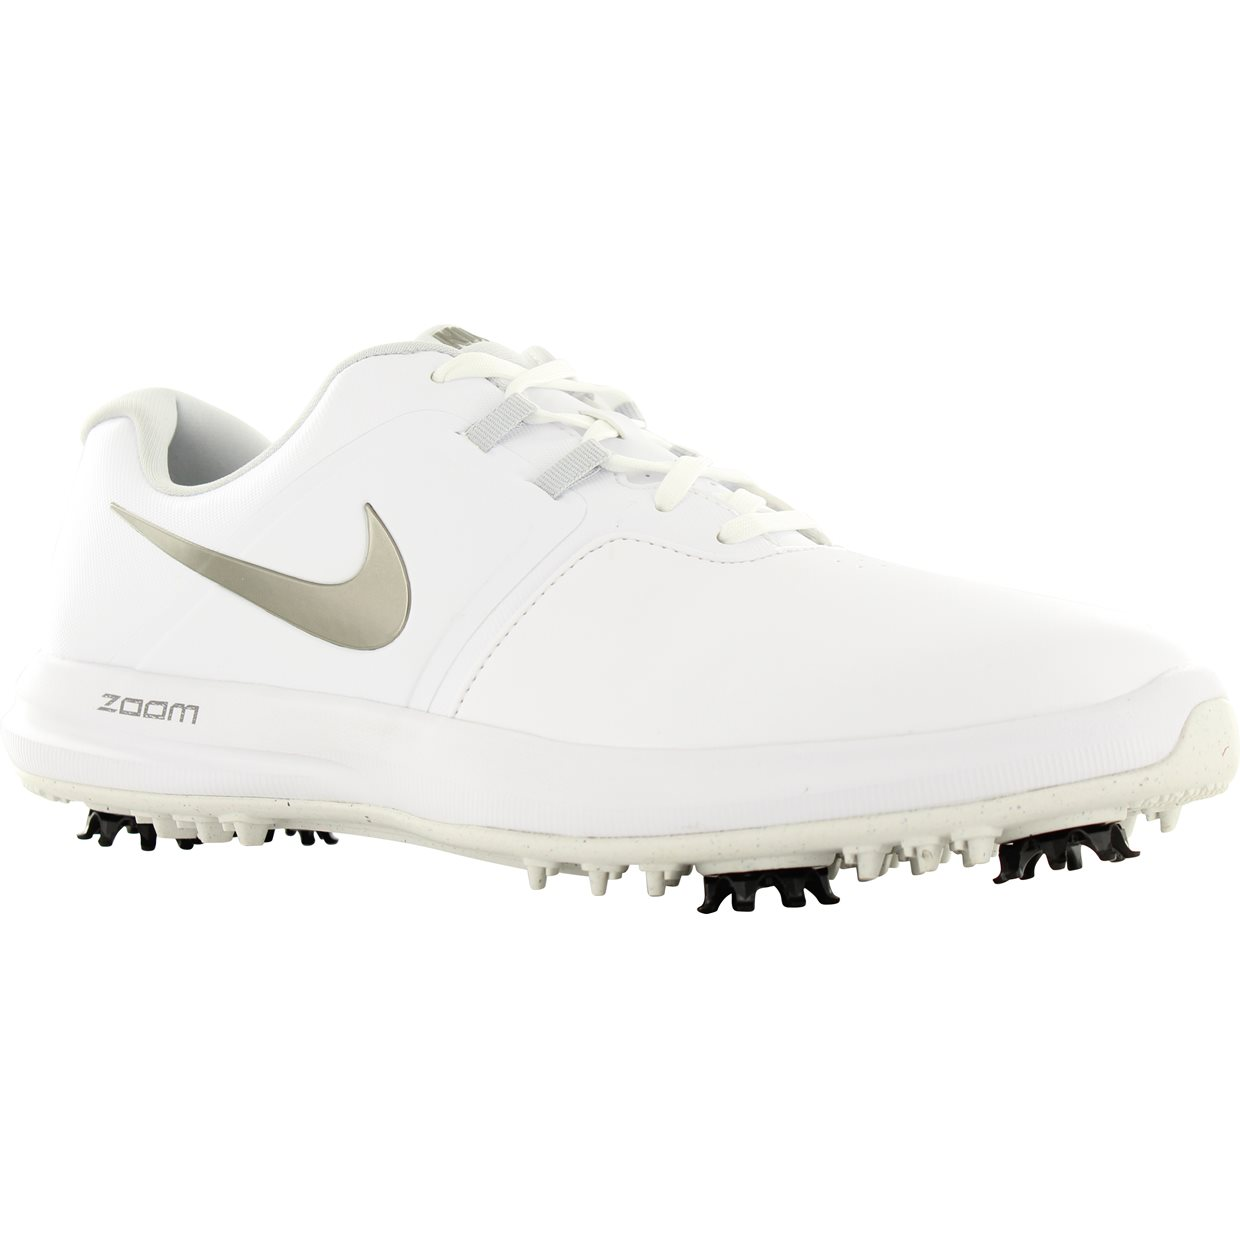 7a594b0e5 Nike Air Zoom Victory Golf Shoes at GlobalGolf.com